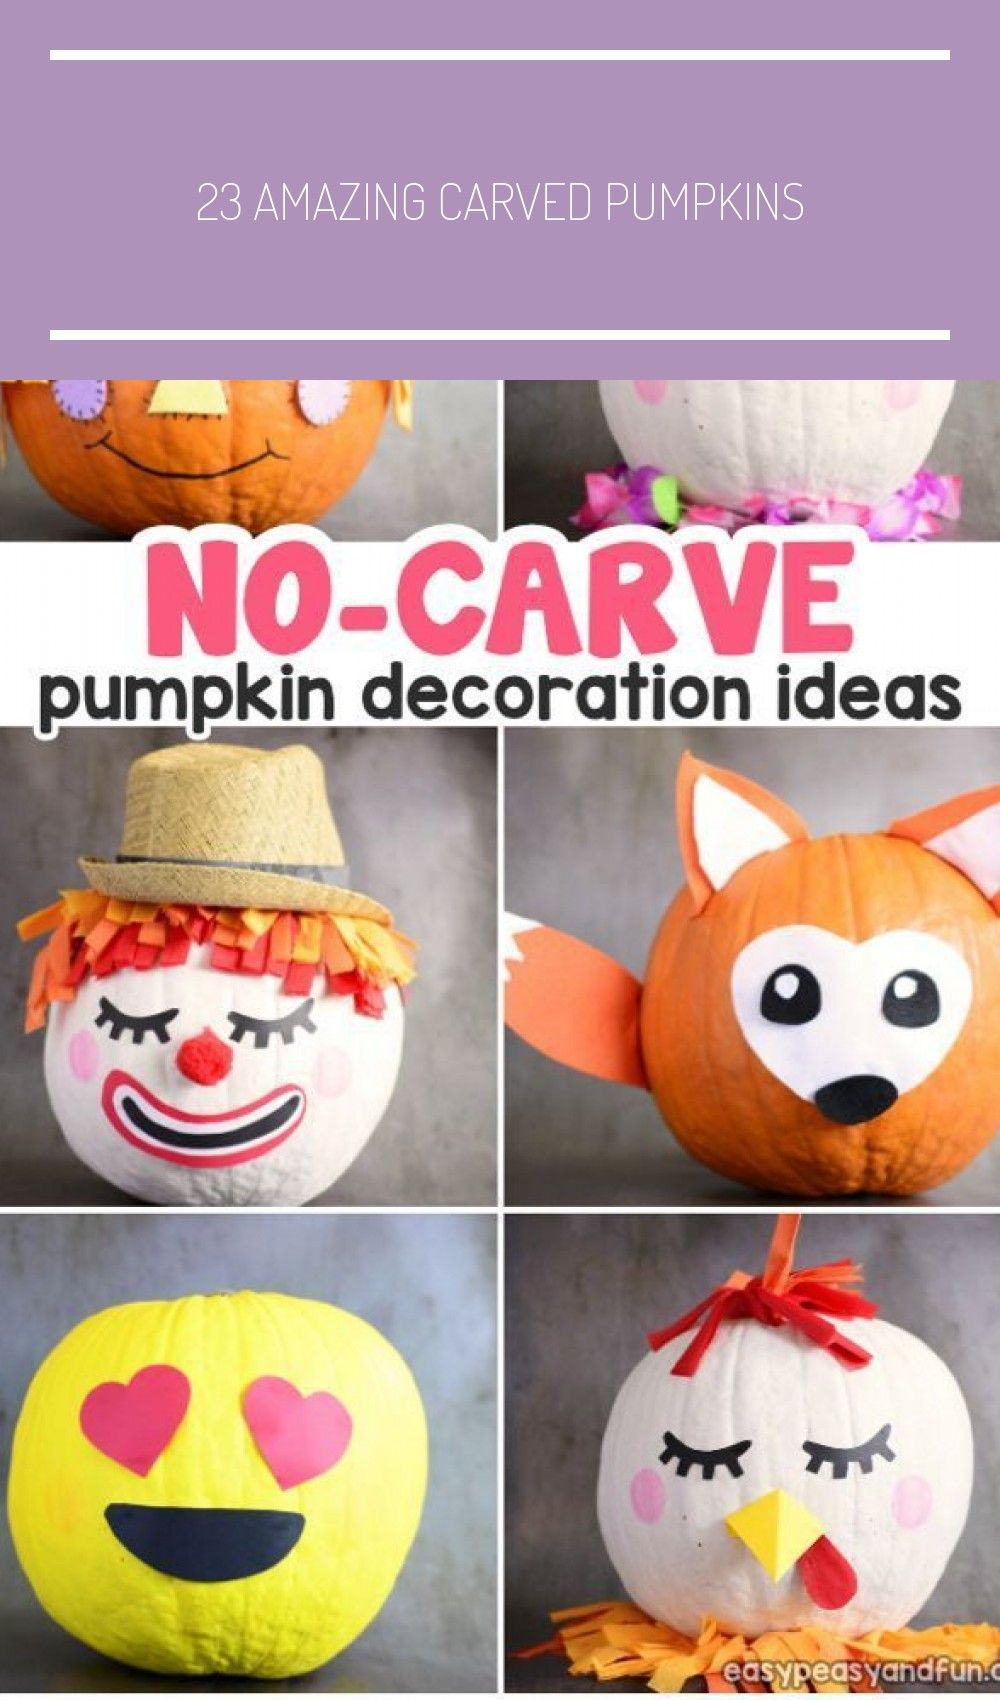 23 Amazing Carved Pumpkins #pumpkinpaintingideascreative